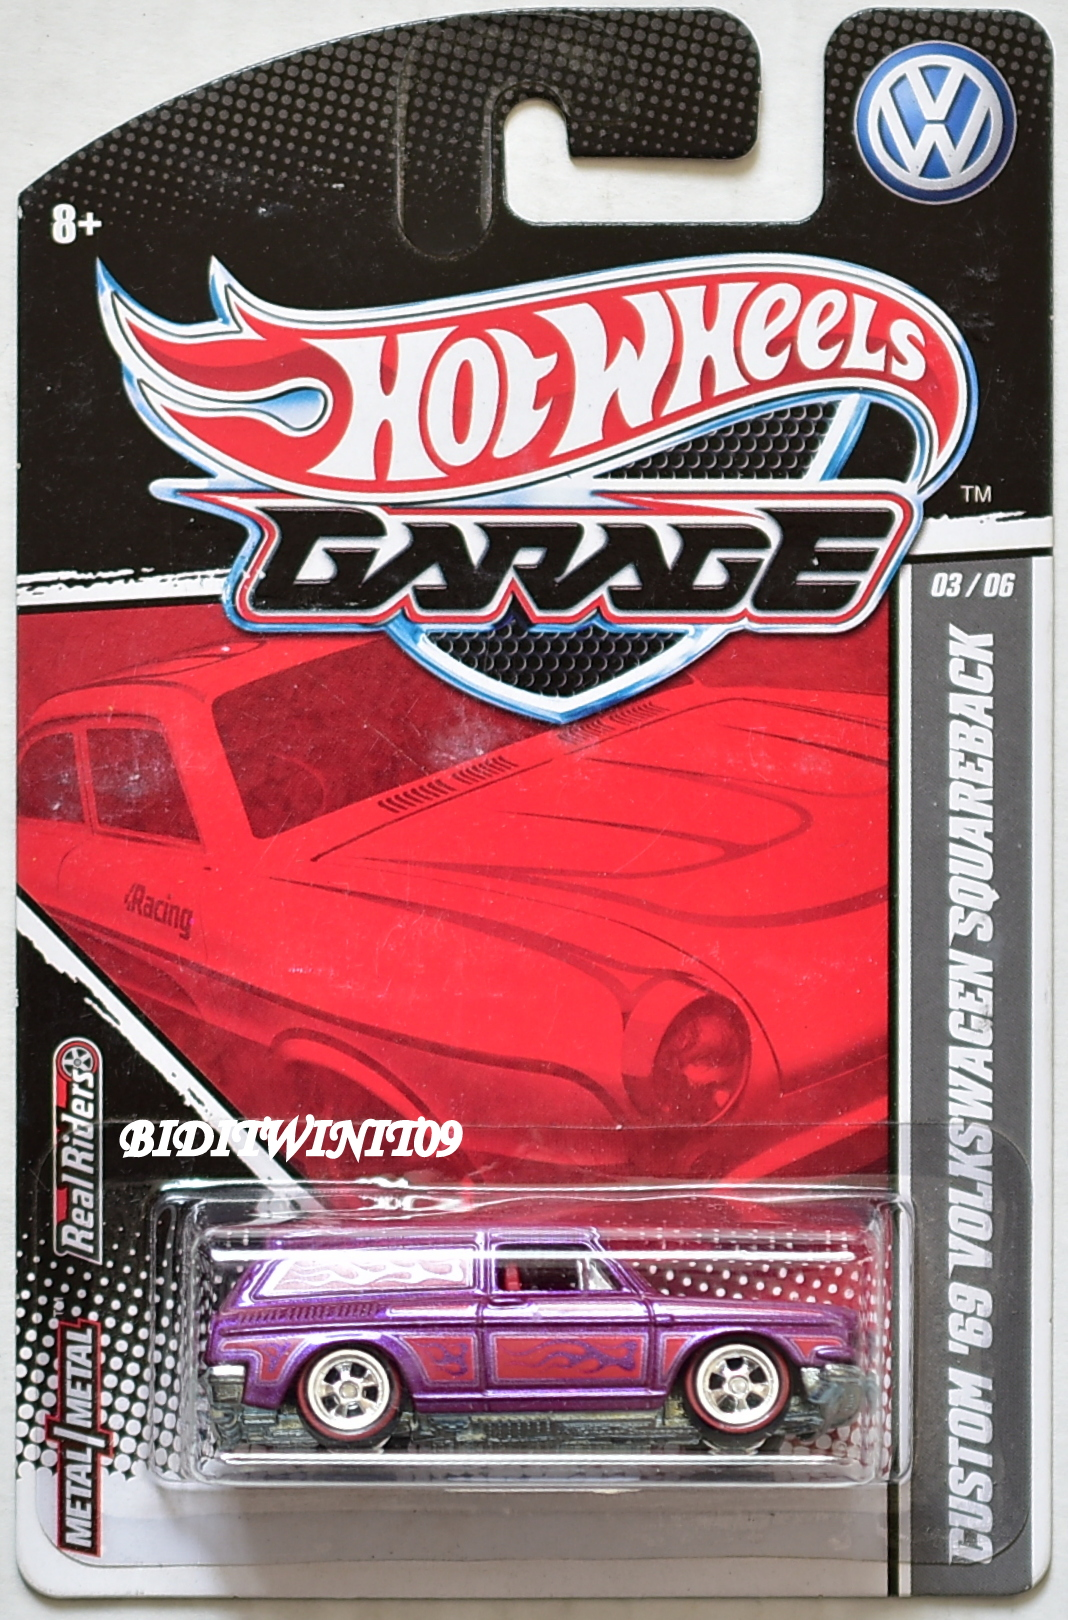 HOT WHEELS GARAGE CUSTOM '69 VOLKSWAGEN SQUAREBACK #03/06 PURPLE